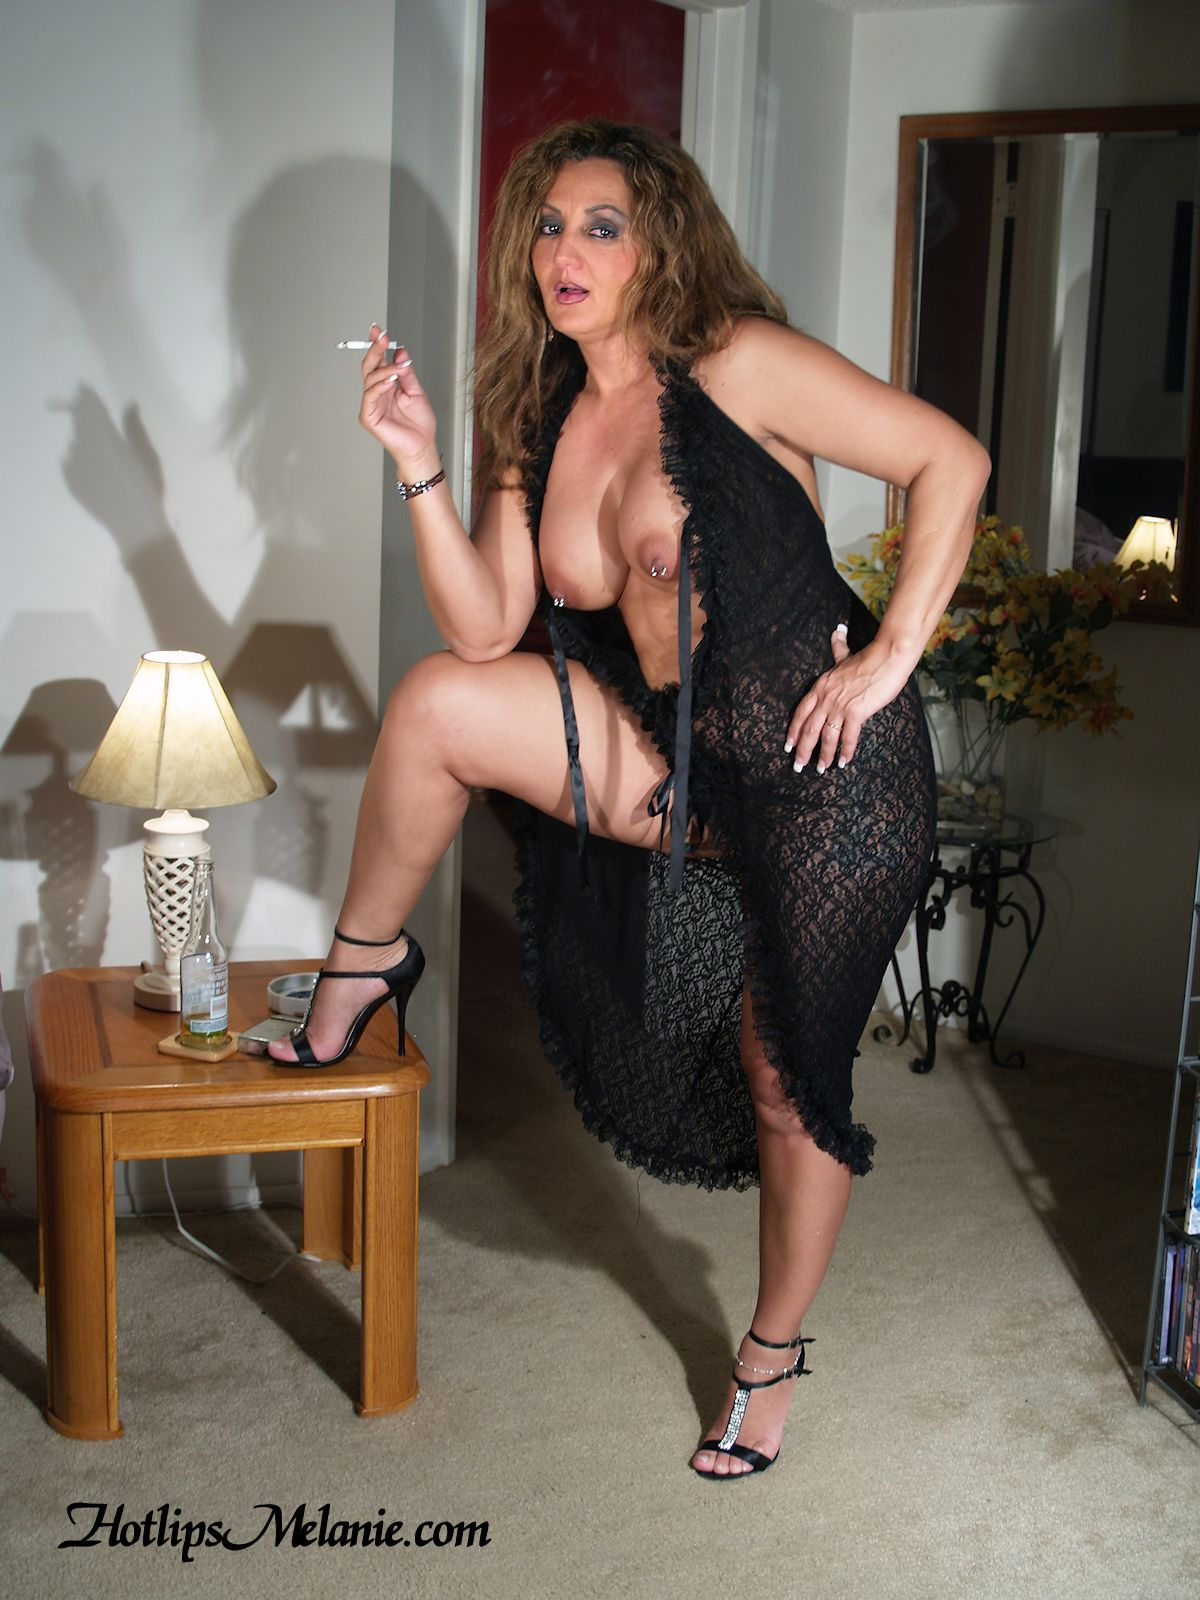 Free milf fetish gallery